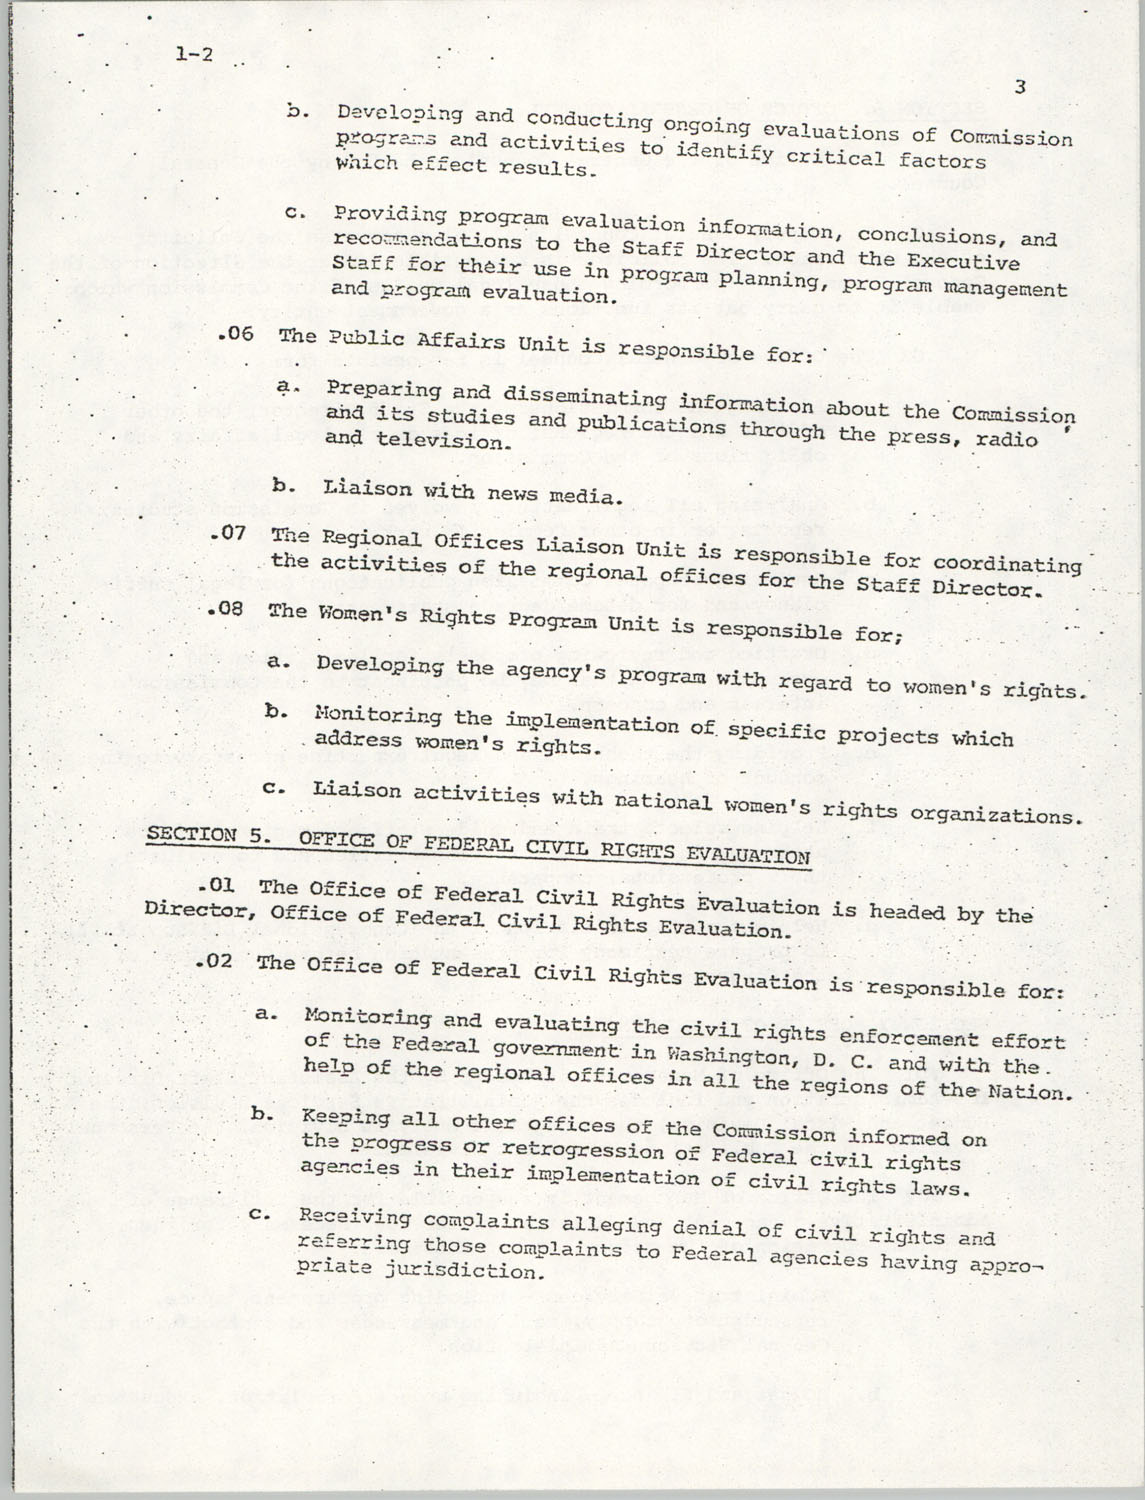 Administrative Manual Instruction 1-2, Organization of the U.S. Commission on Civil Rights, Page 3